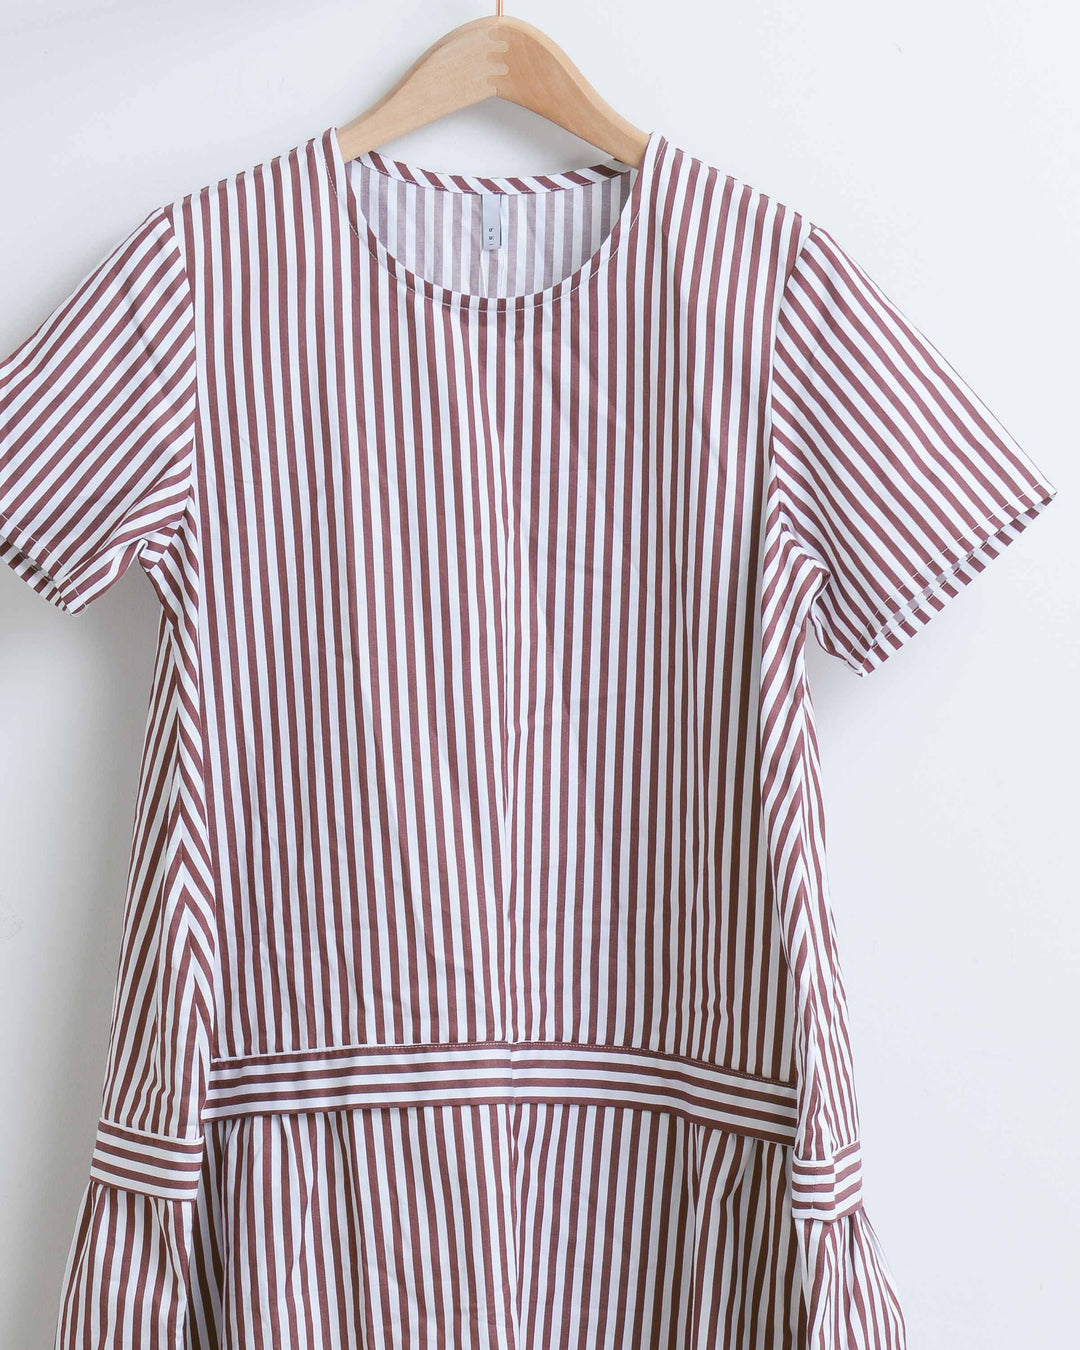 Maroon & White Cotton Striped Dress